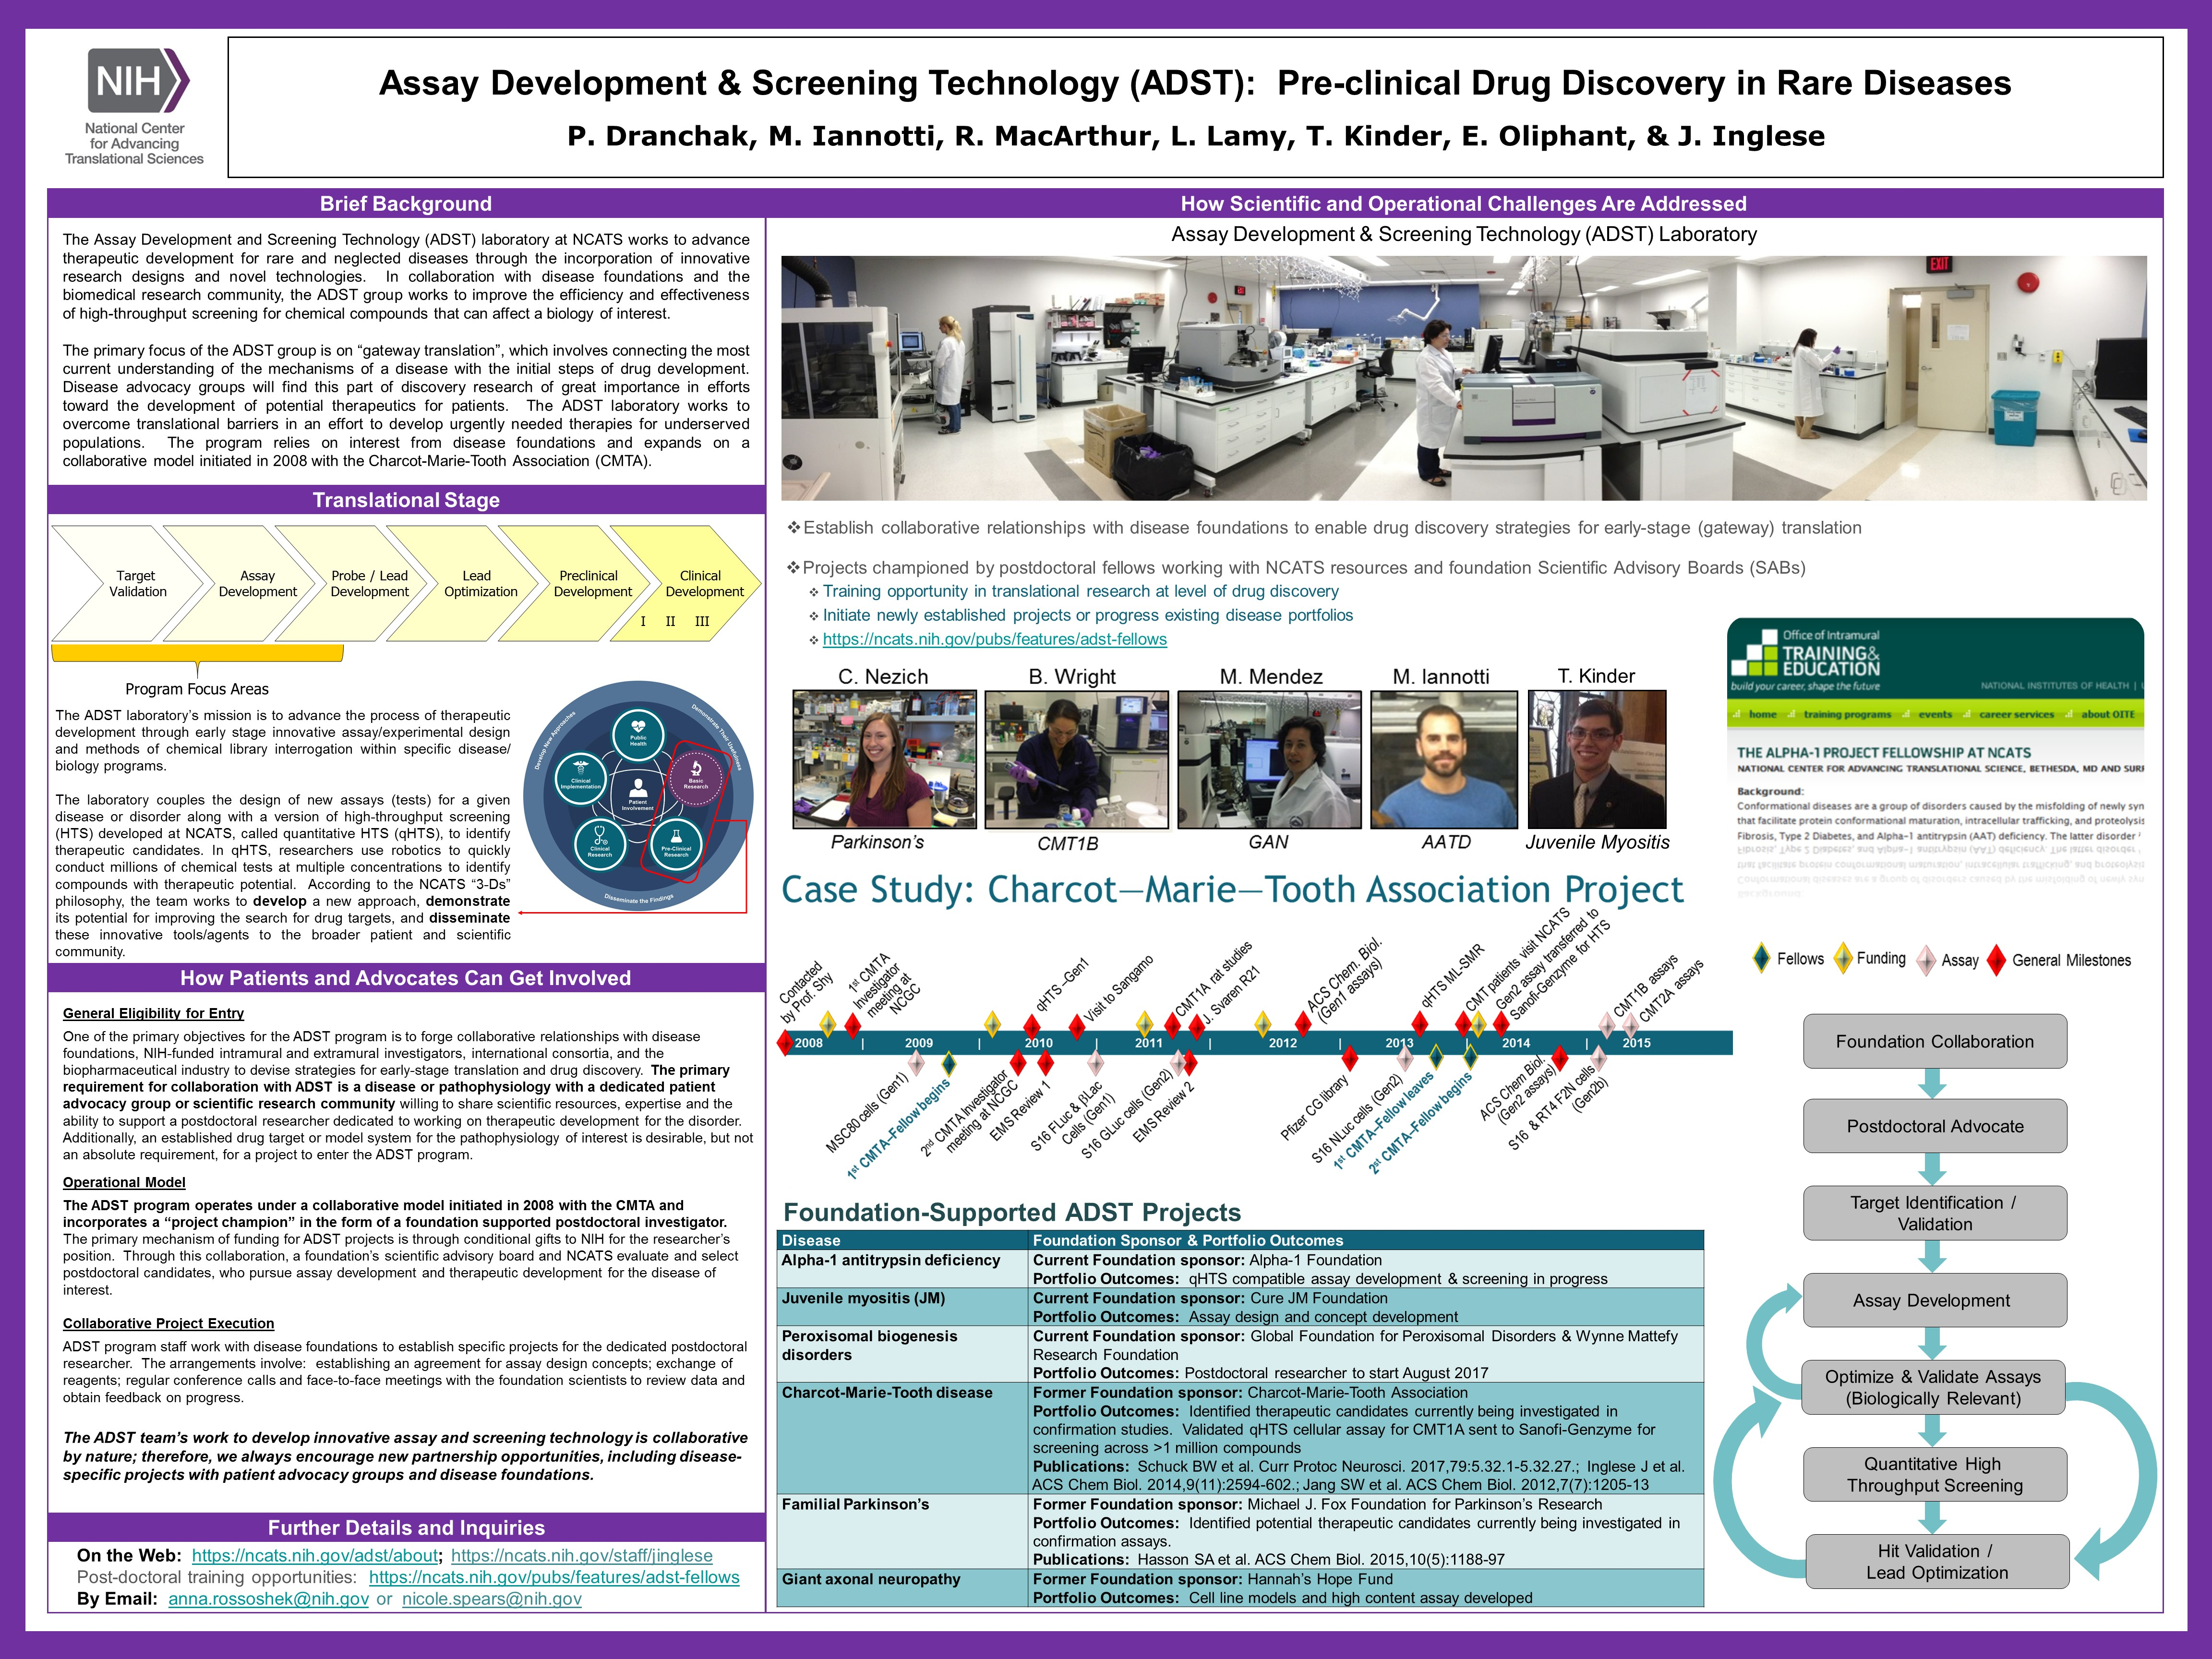 This NCATS Day poster provides background on the Assay Development & Screening Technology program, including goals, where it falls within the path of drug and therapeutics development and the translational science spectrum, how patients and advocates can get involved, and how NCATS addresses scientific and operational challenges.